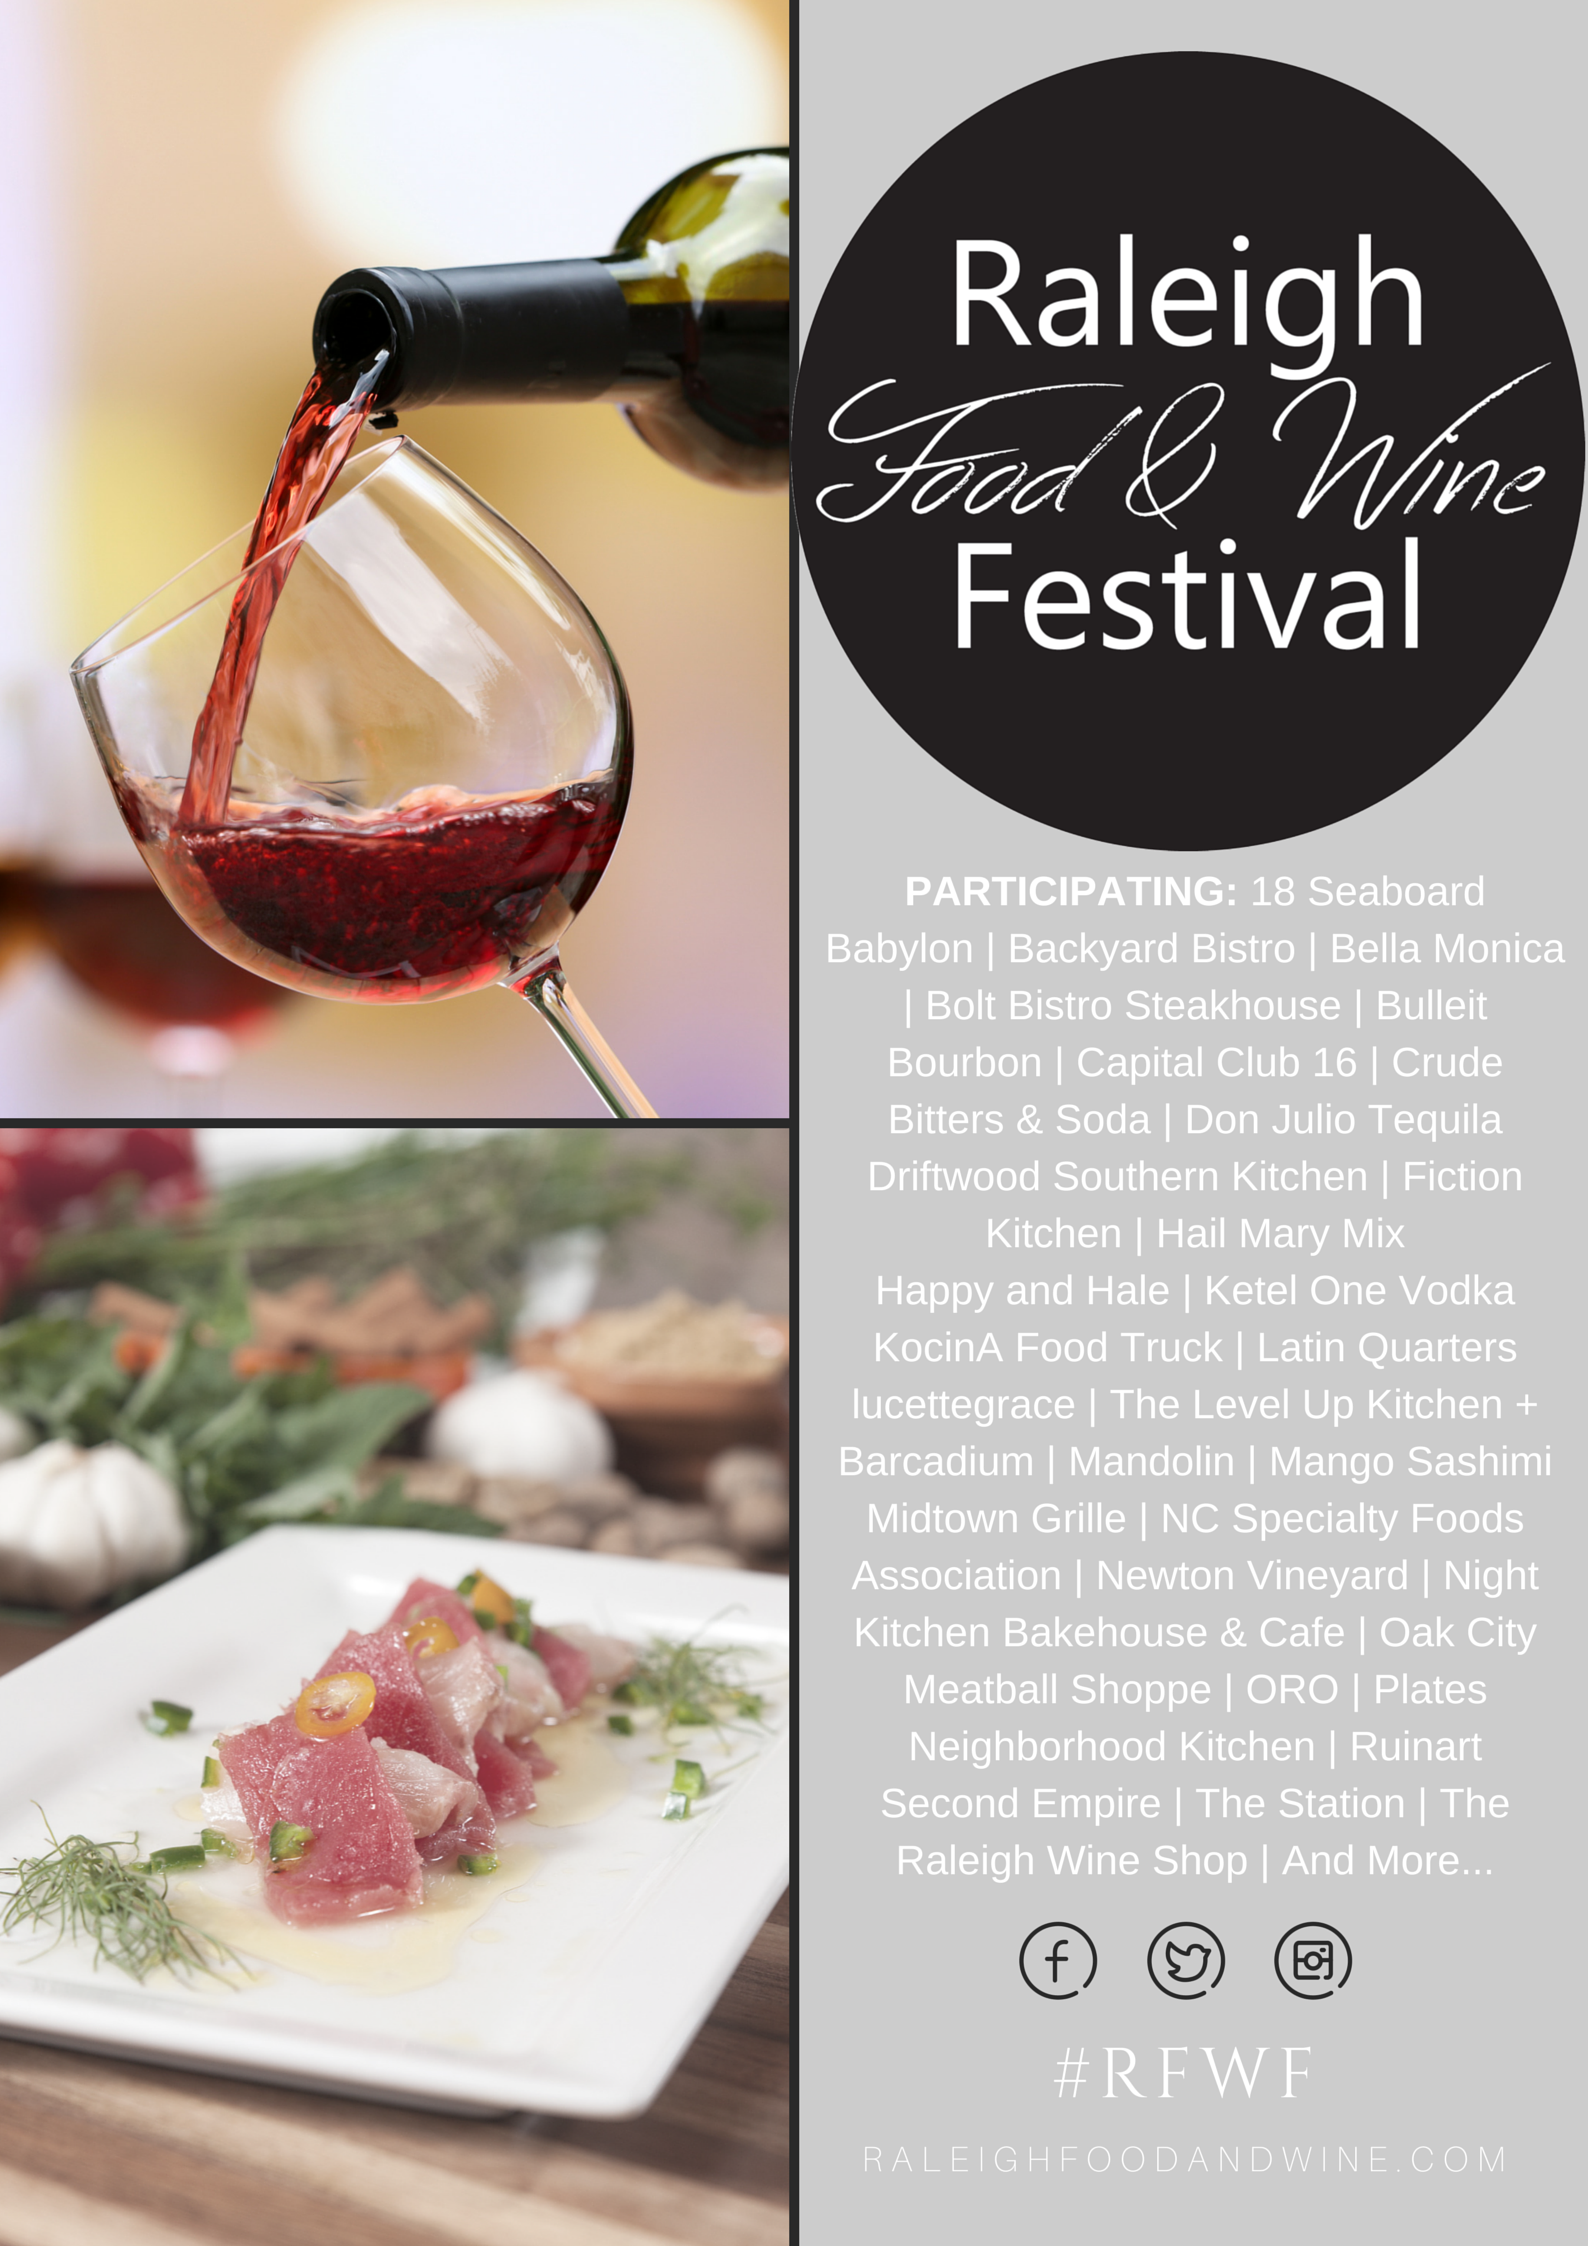 Raleigh Food & Wine Festival - 2015 Participants